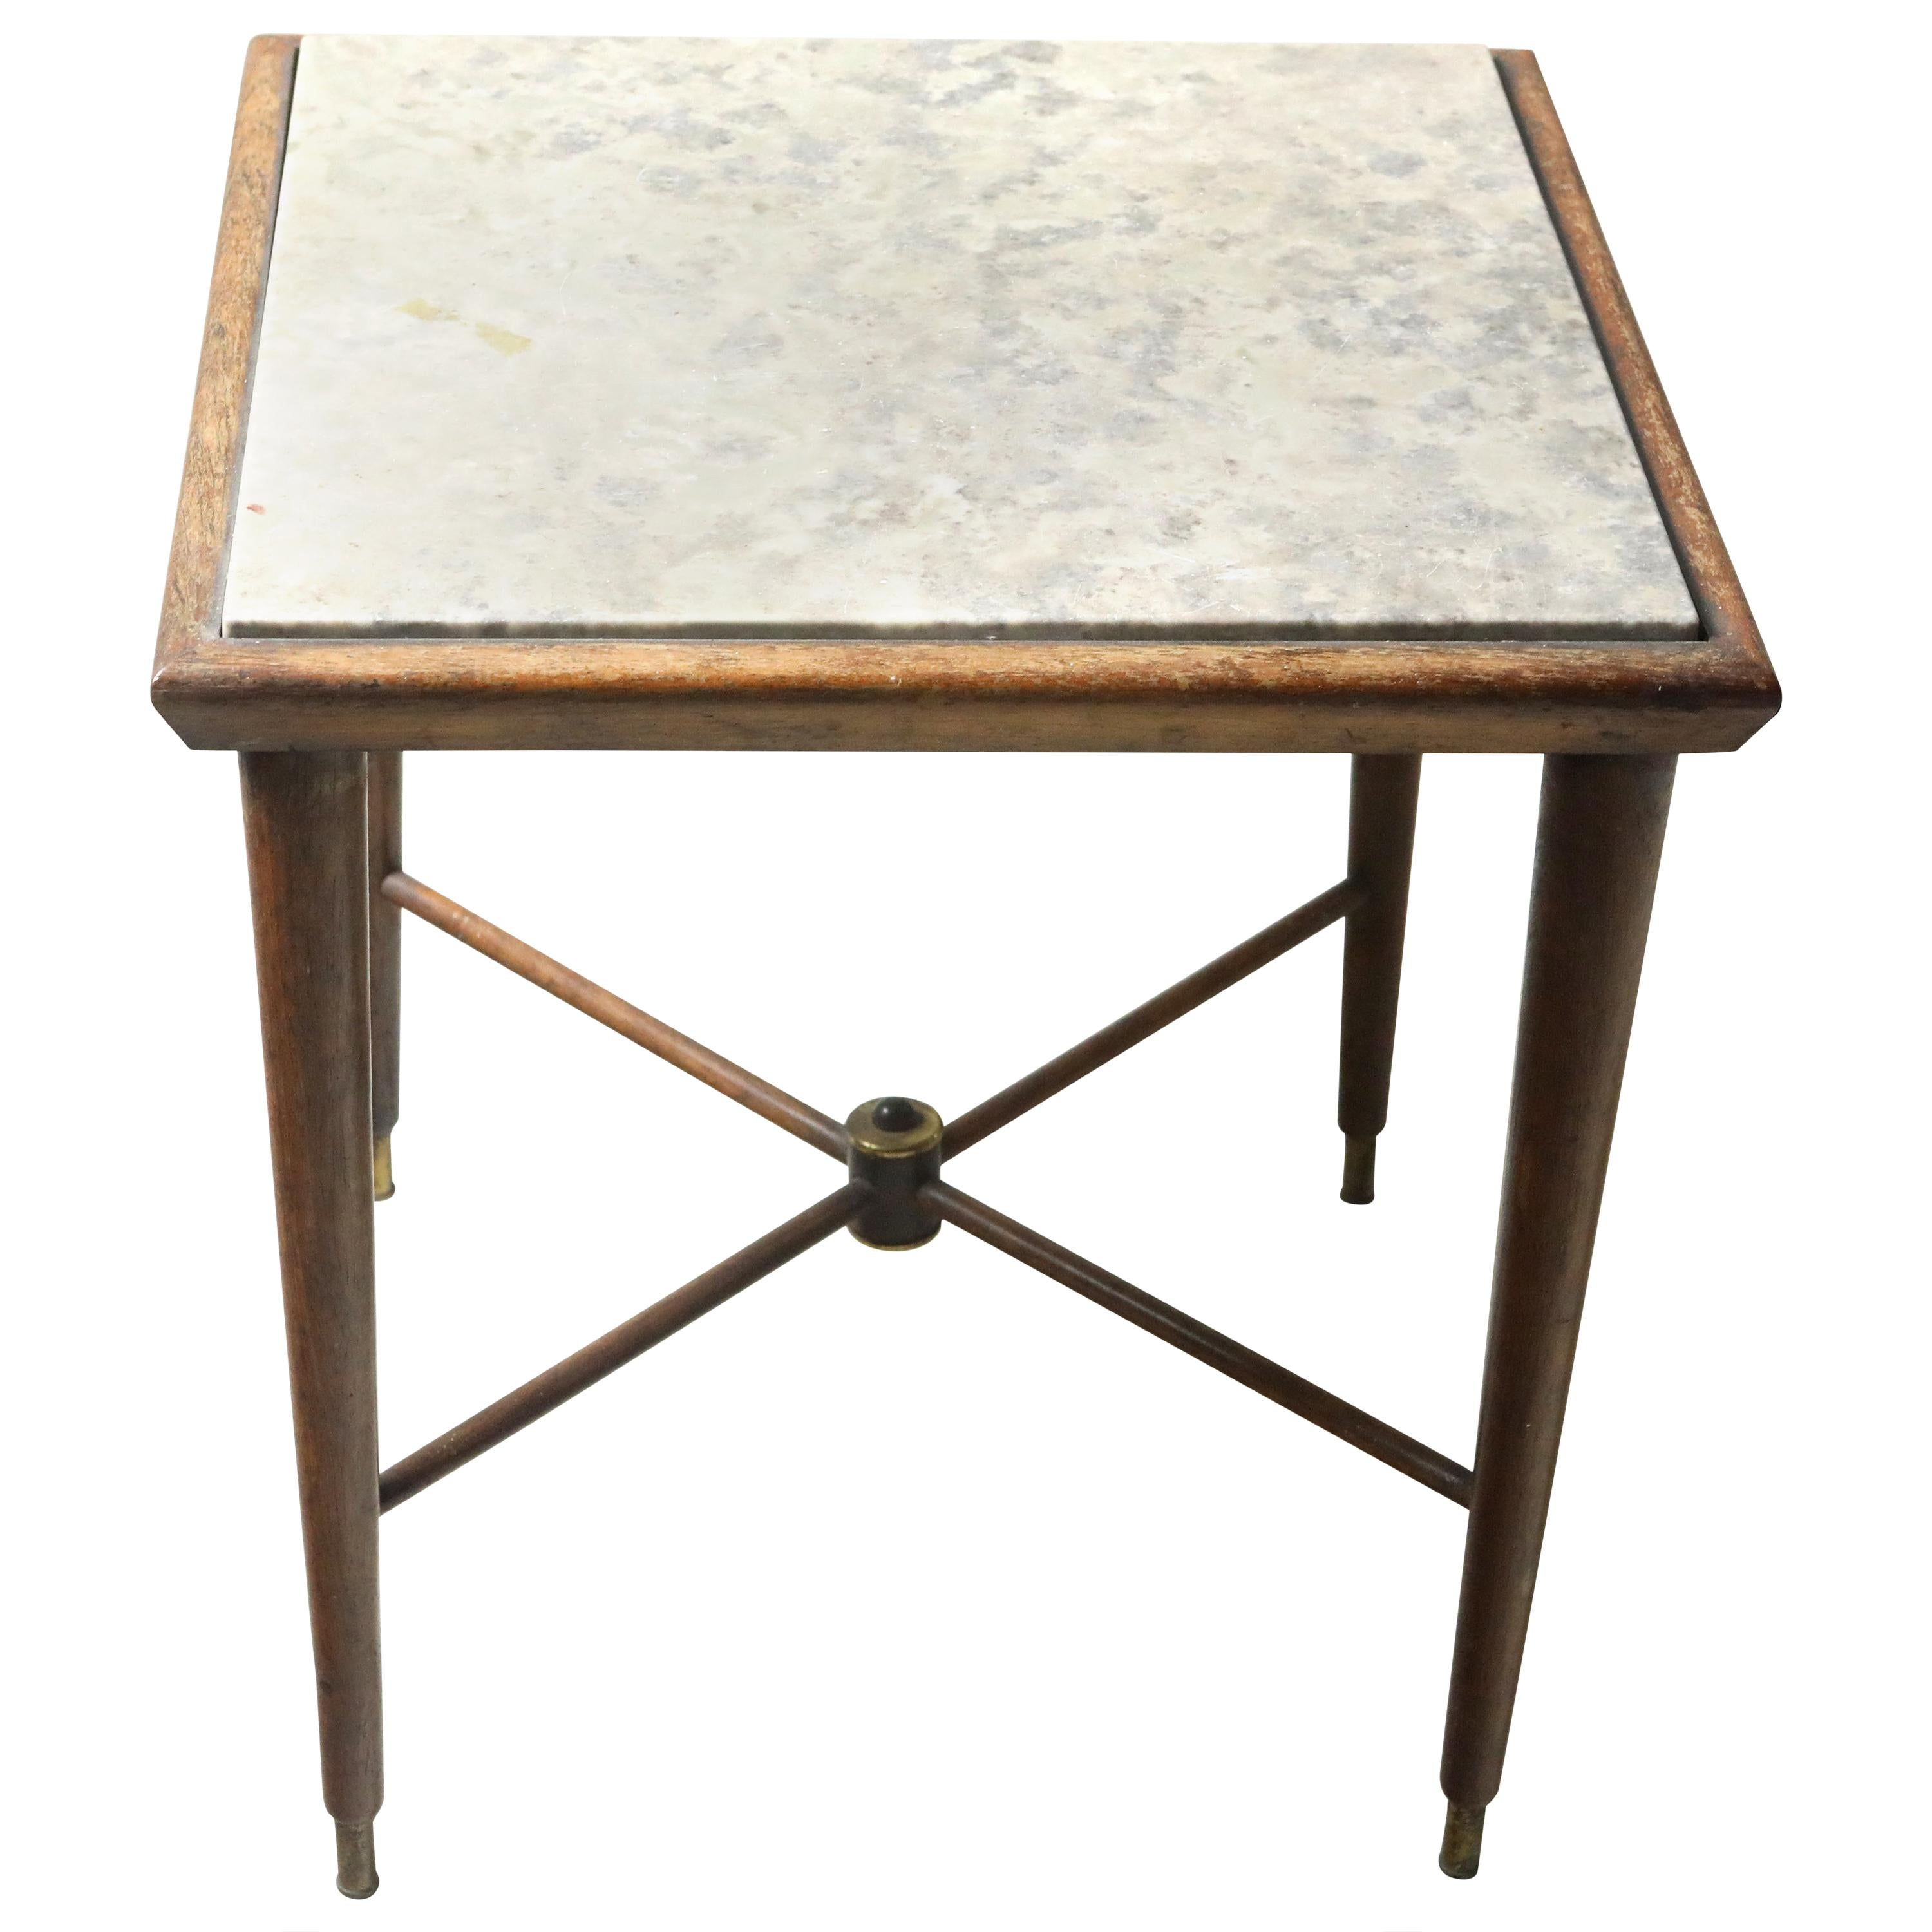 Mid-Century Modern Marble-Top Side Table by Giuseppe Scapinelli, Brazil, 1950s